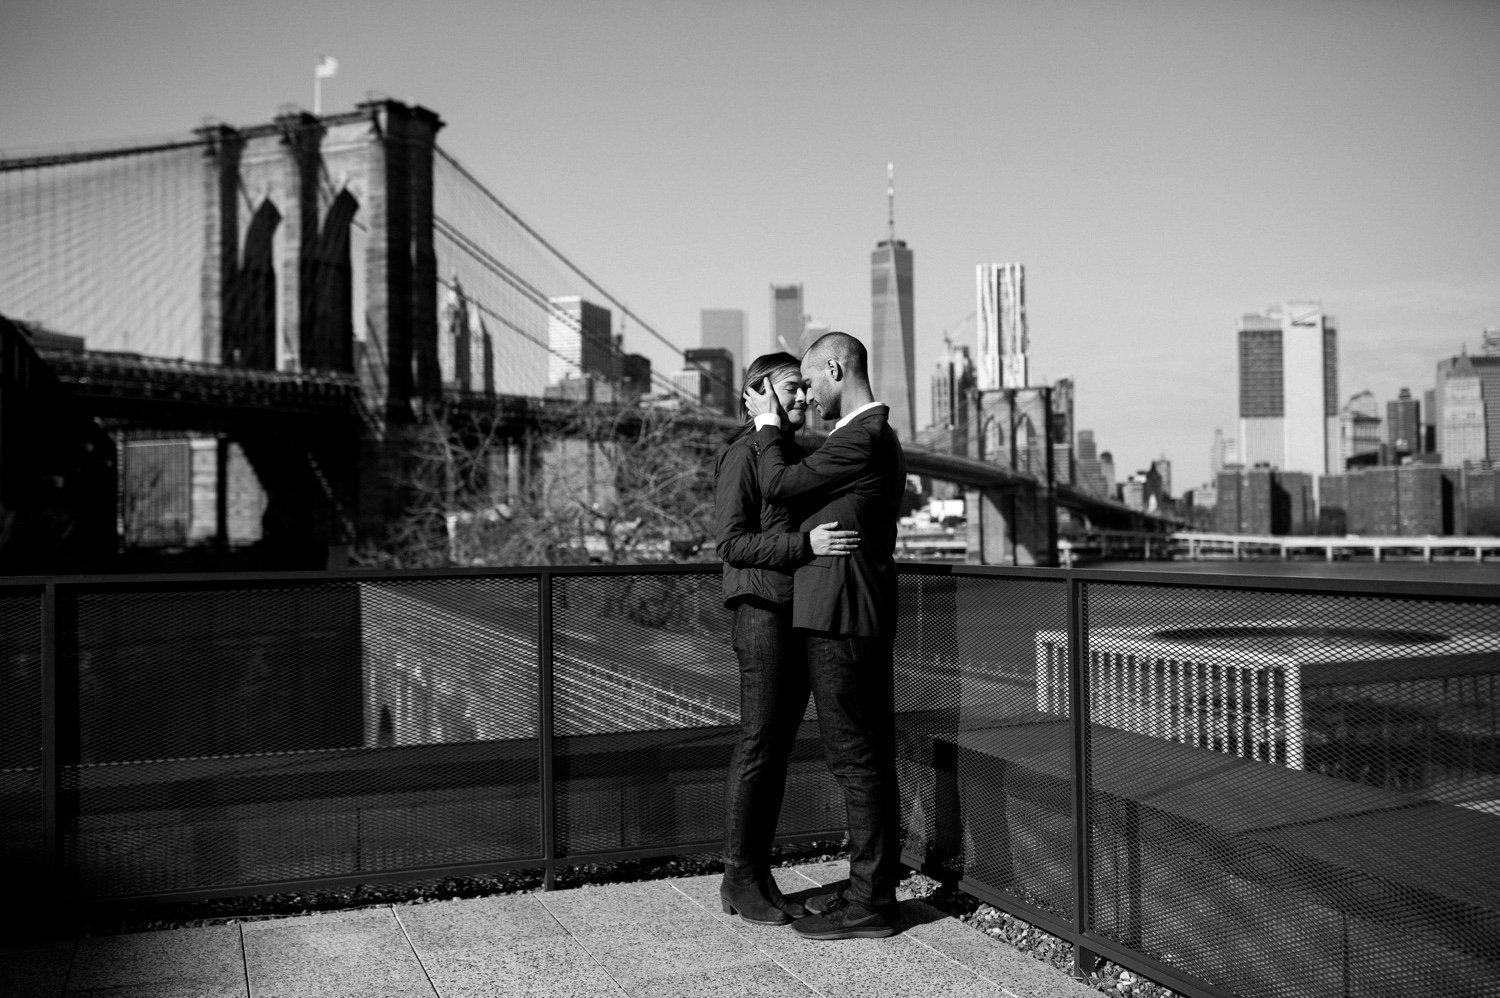 Best Destination wedding photographers in NY, Best Destination wedding photographers, DUMBO Engagement Session, DUMBO Brooklyn Engagement Photographer, The coolest places in brooklyn for an engagement session, Best places to take your engagement photos in brooklyn, Brooklyn NY Wedding Photographer, Wedding Photographers in Brooklyn, NYC Wedding Photographers on the Knot, Luxury NYC Wedding Photographers, Natura Collective, Sea Shack Photo and Films, Outside engagement session inspiration photos, Pinterest poses for engagement sessions, NYC Skyline engagement session photos